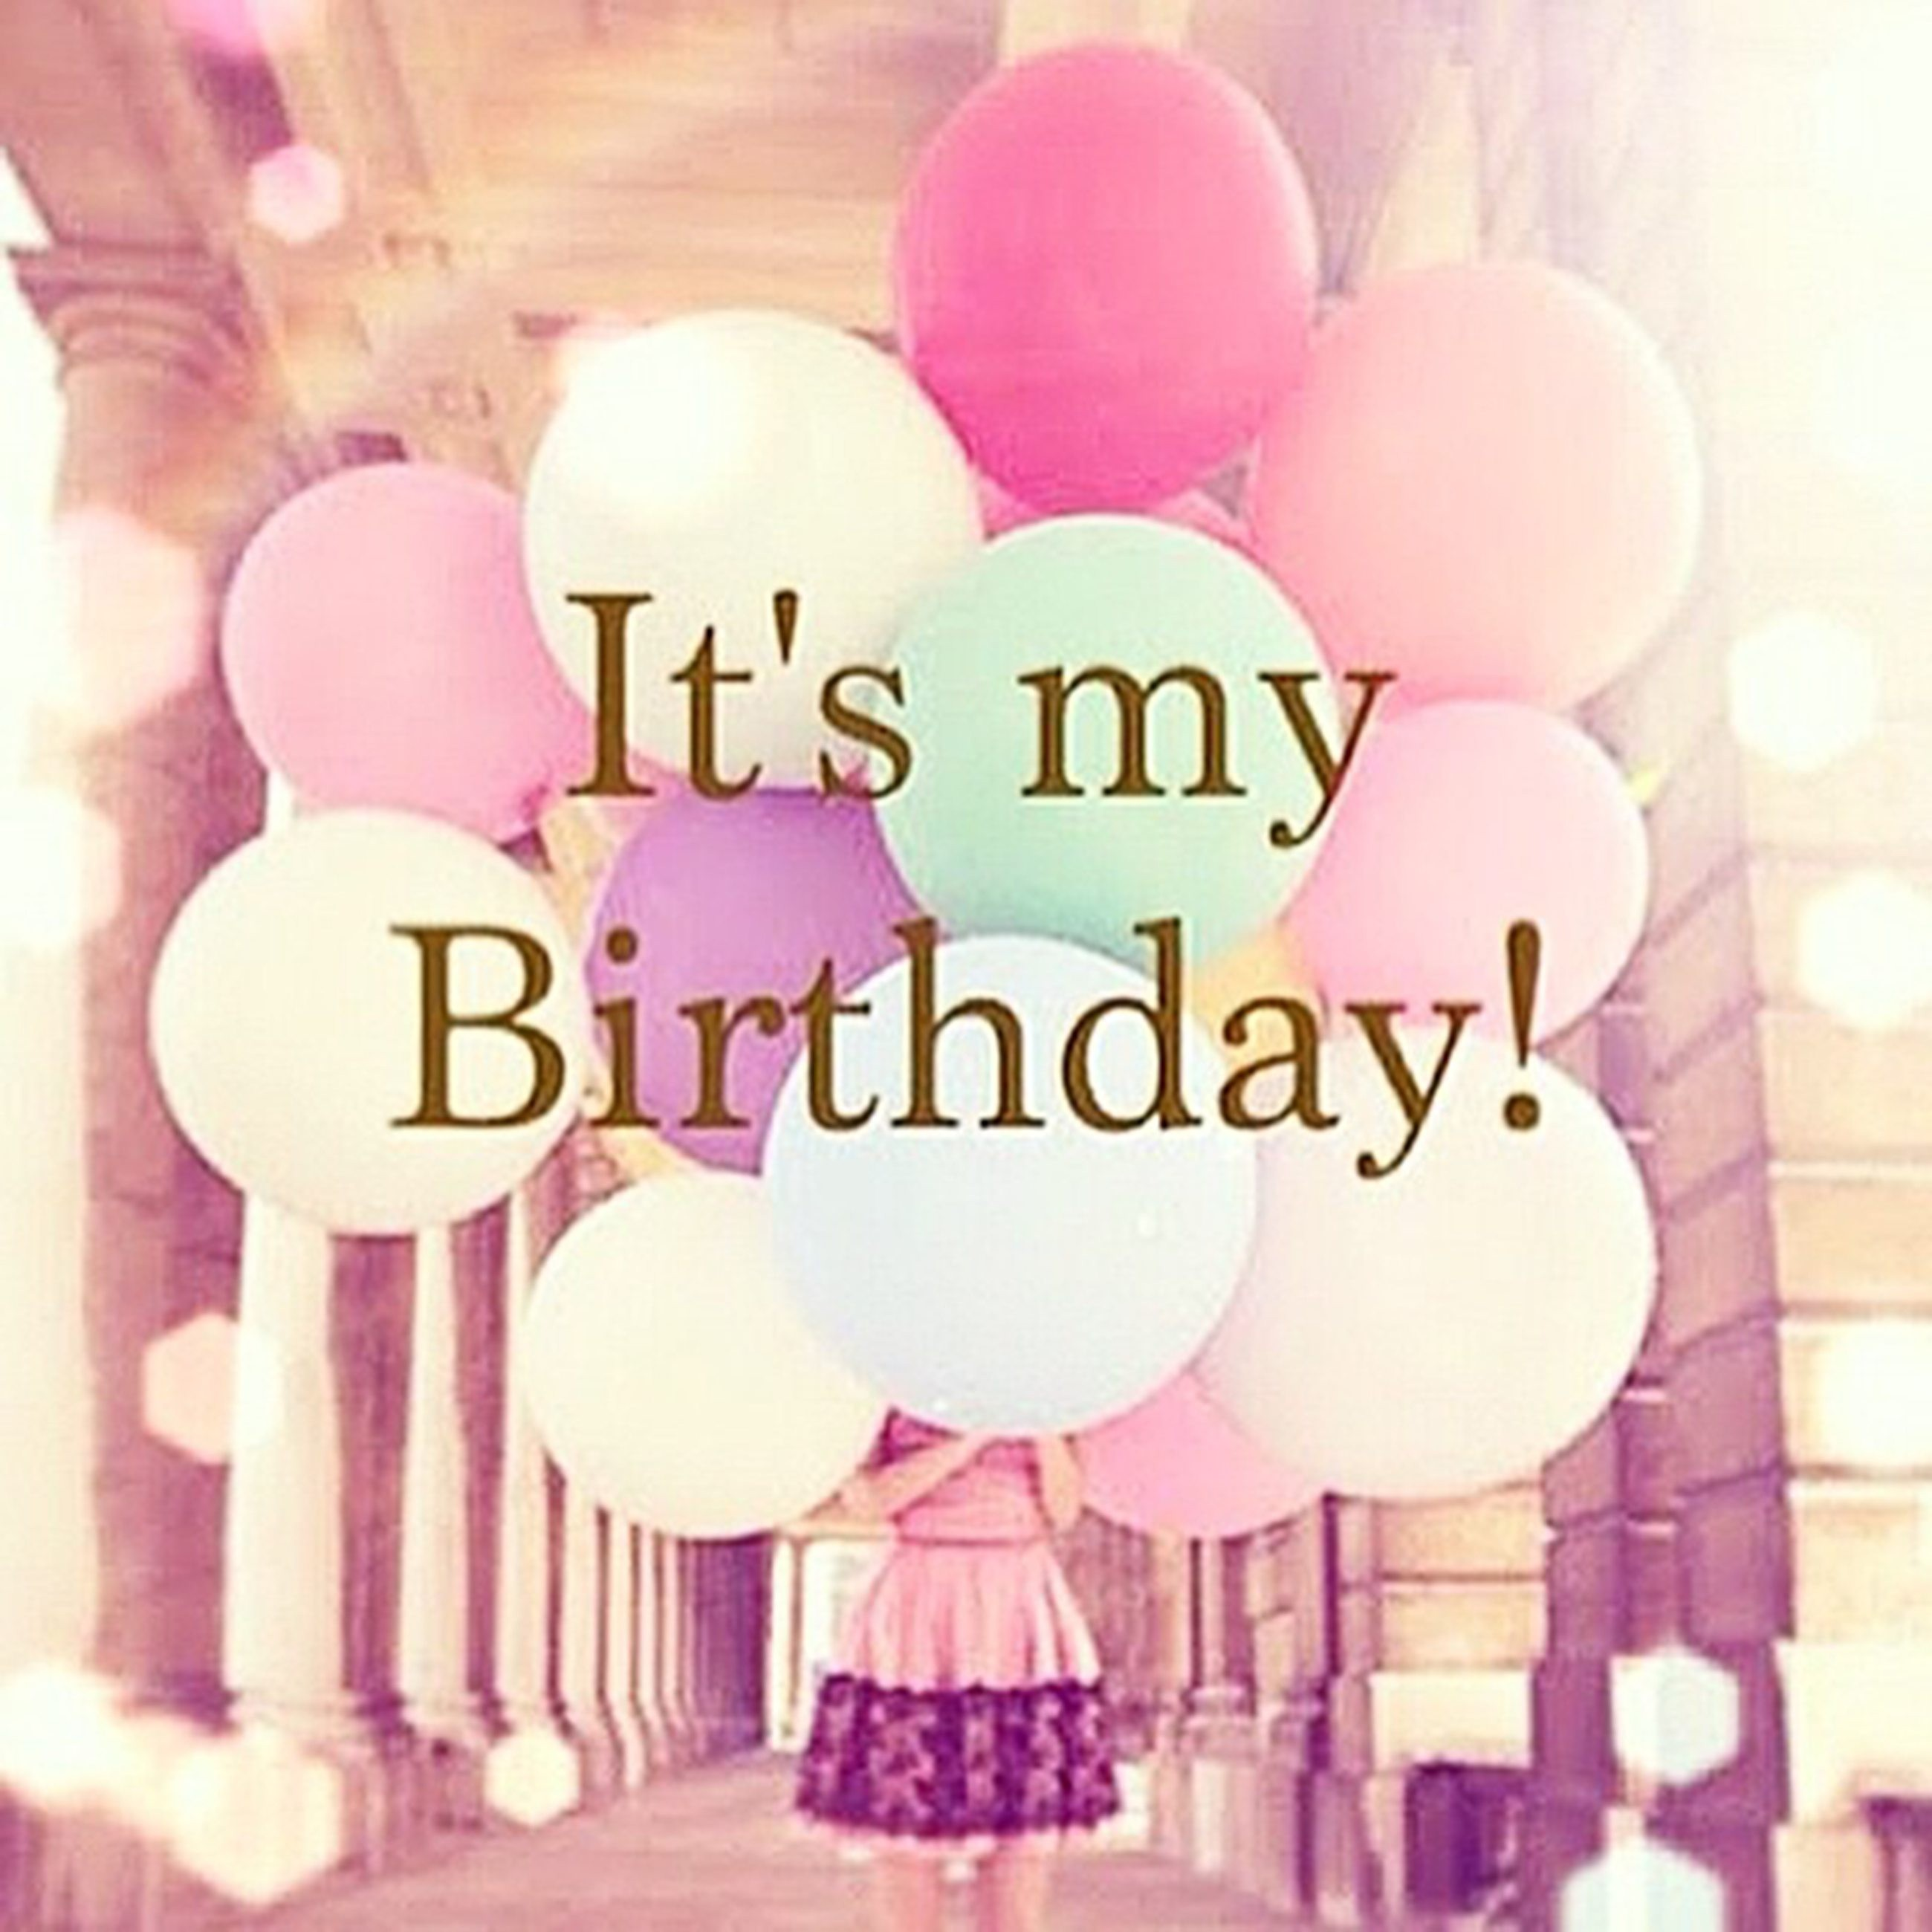 happy birthday message for baby girl ; happy-birthday-baby-girl-quotes-best-of-100-happy-birthday-to-me-quotes-prayers-amp-memes-ilove-of-happy-birthday-baby-girl-quotes